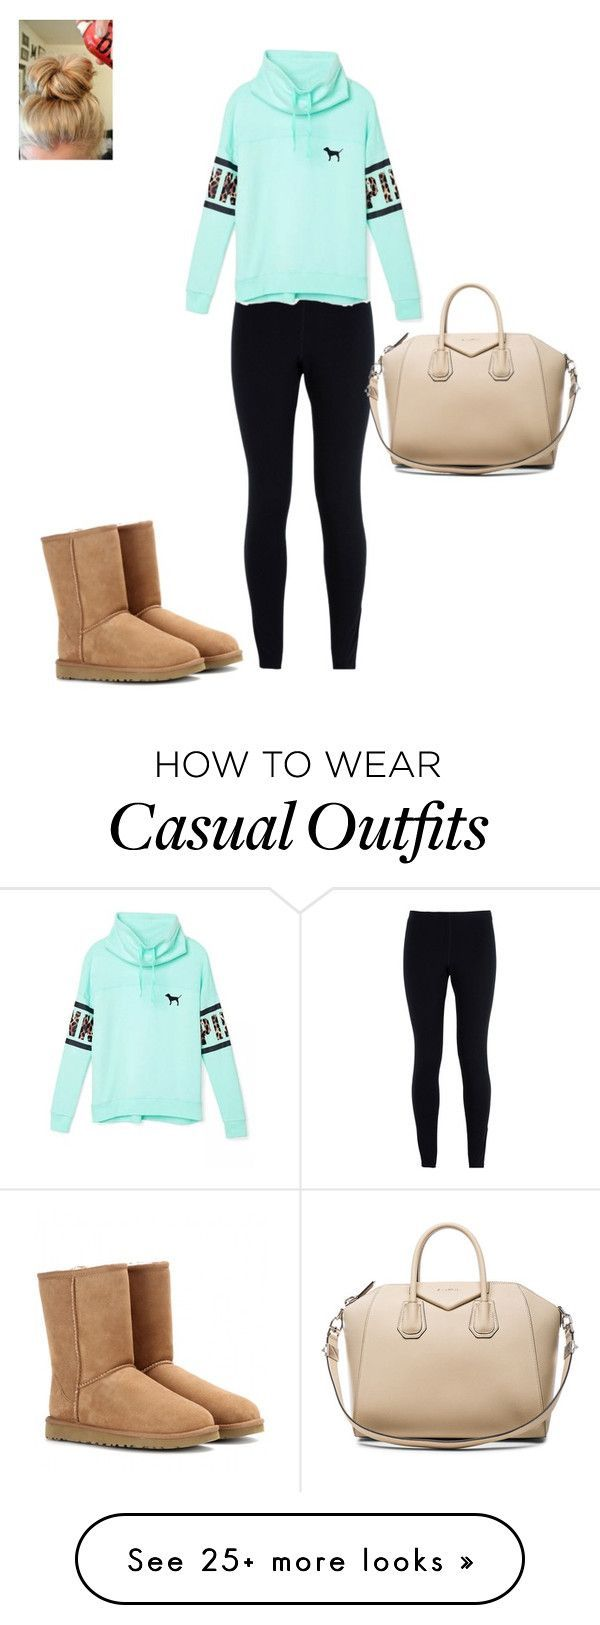 """Casual winter day out"" by hammiegrl on Polyvore featuring NIKE, UGG Australia, Victoria's Secret, Givenchy, women's clothing, women, female, woman, misses and juniors"